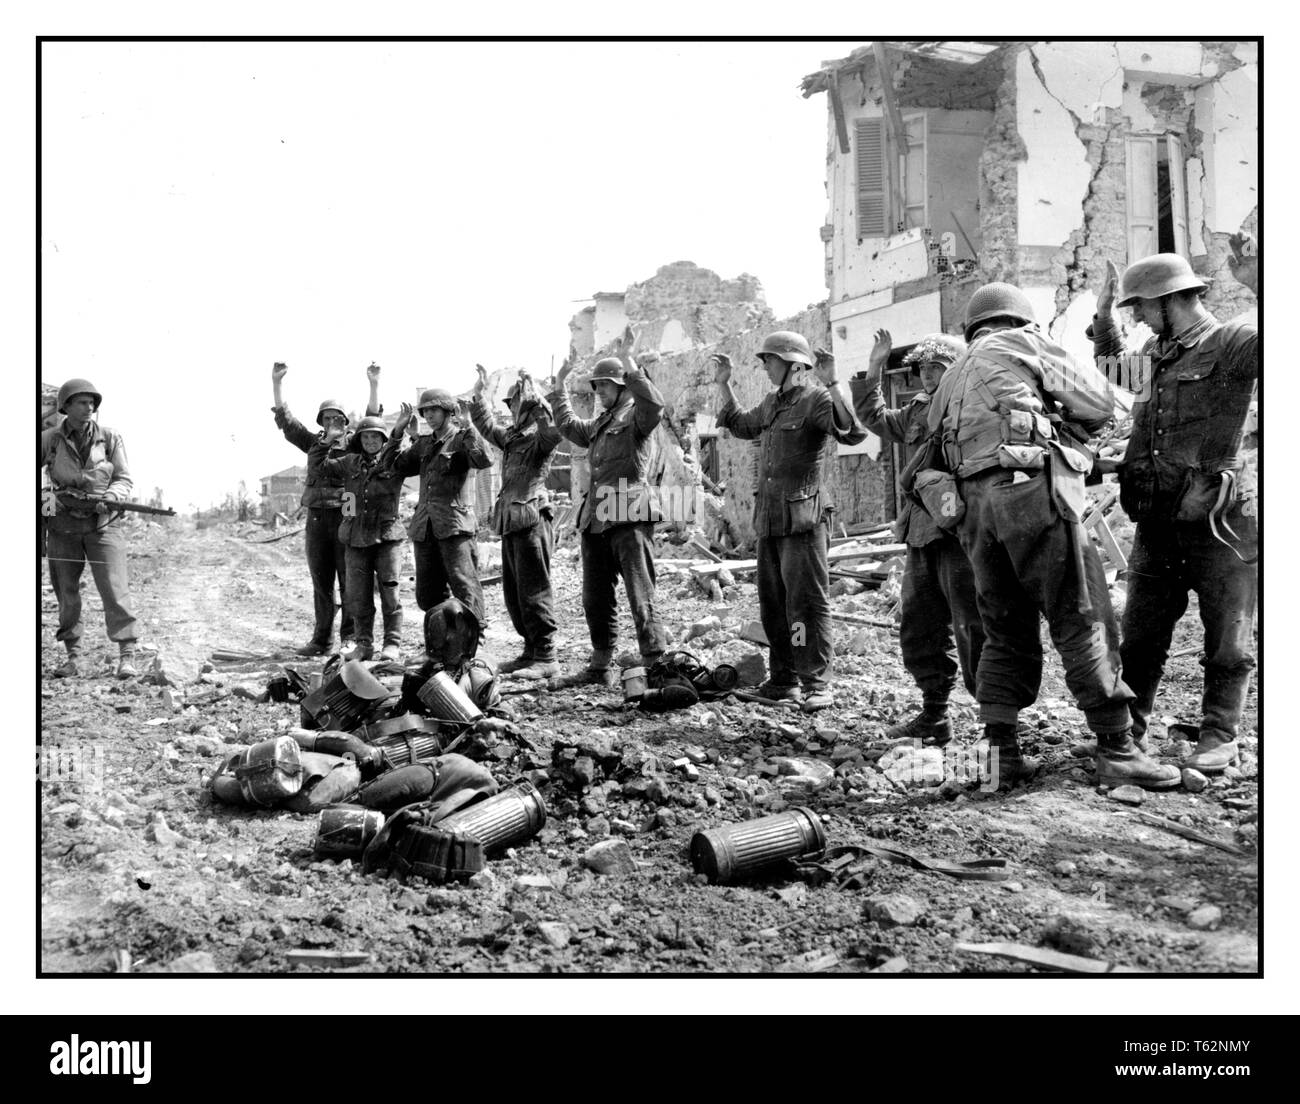 WW2 Propaganda image of German troops surrendering to US military at Anzio Italy.. German Troops surrender to American Forces The Battle of Anzio was a battle of the Italian Campaign of World War II that took place from January 22, 1944 to 5th June 1944 - Stock Image